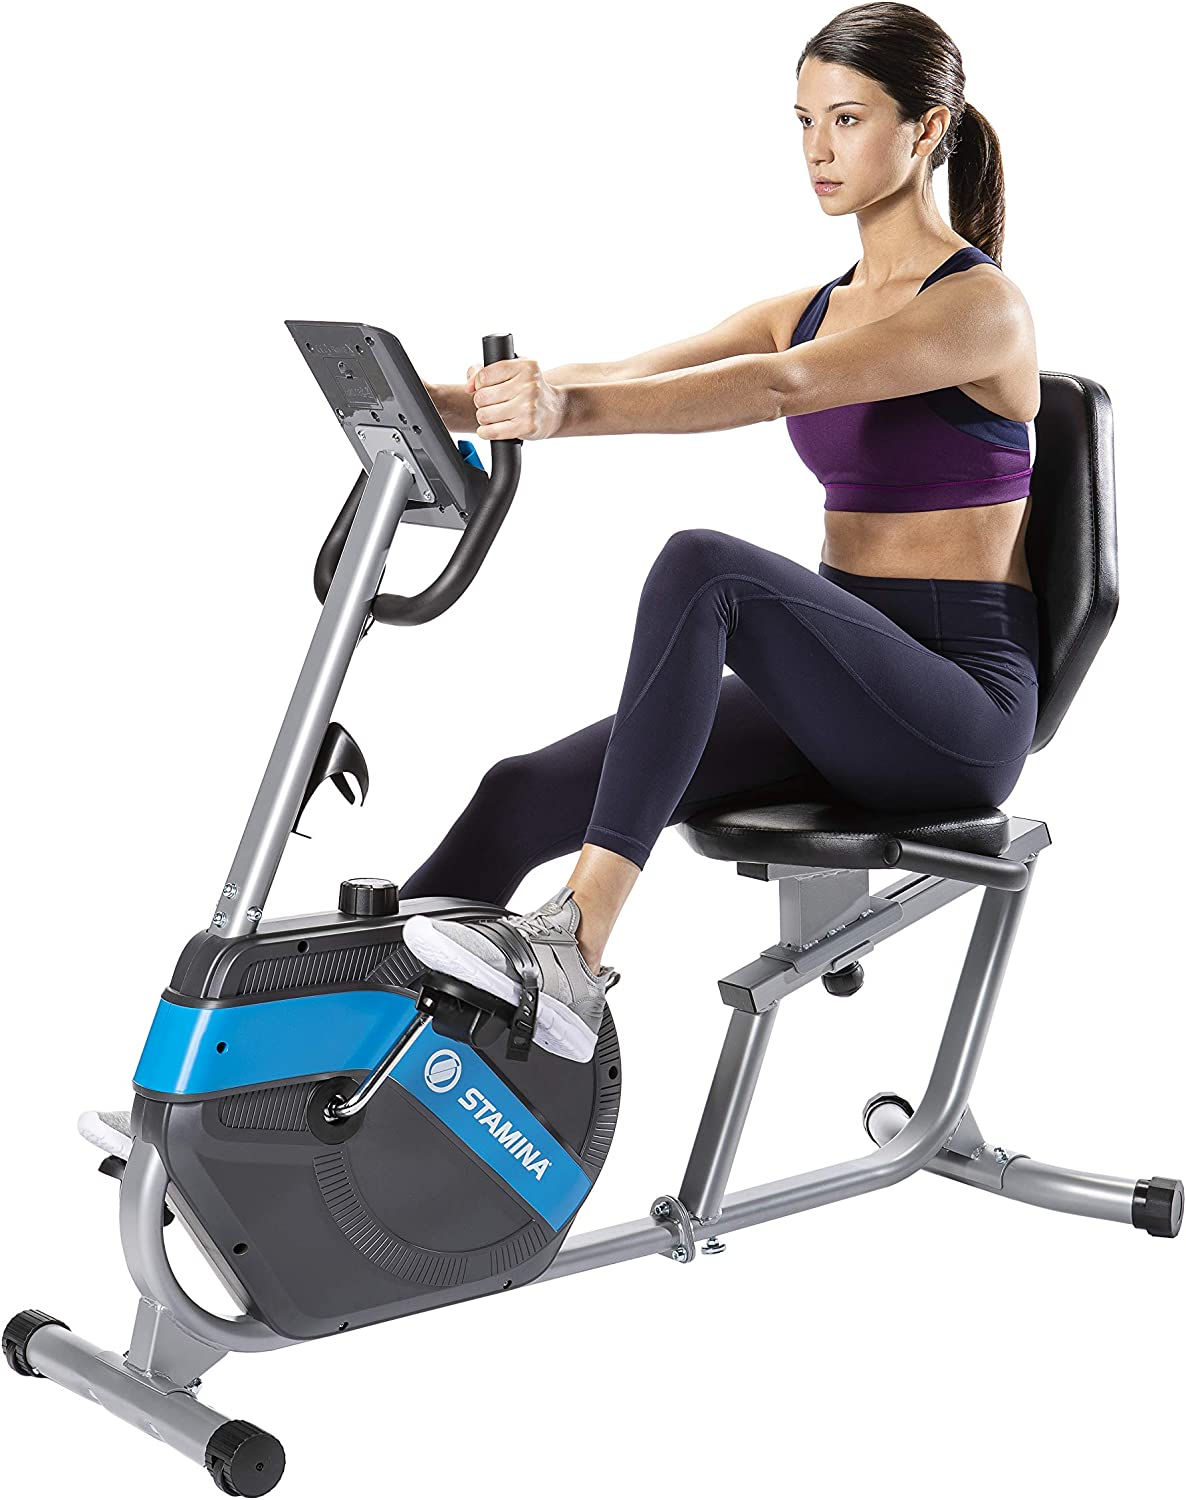 Stamina Magnetic Resistance Recumbent Exercise 評価 オンライン限定商品 On with Free Bike